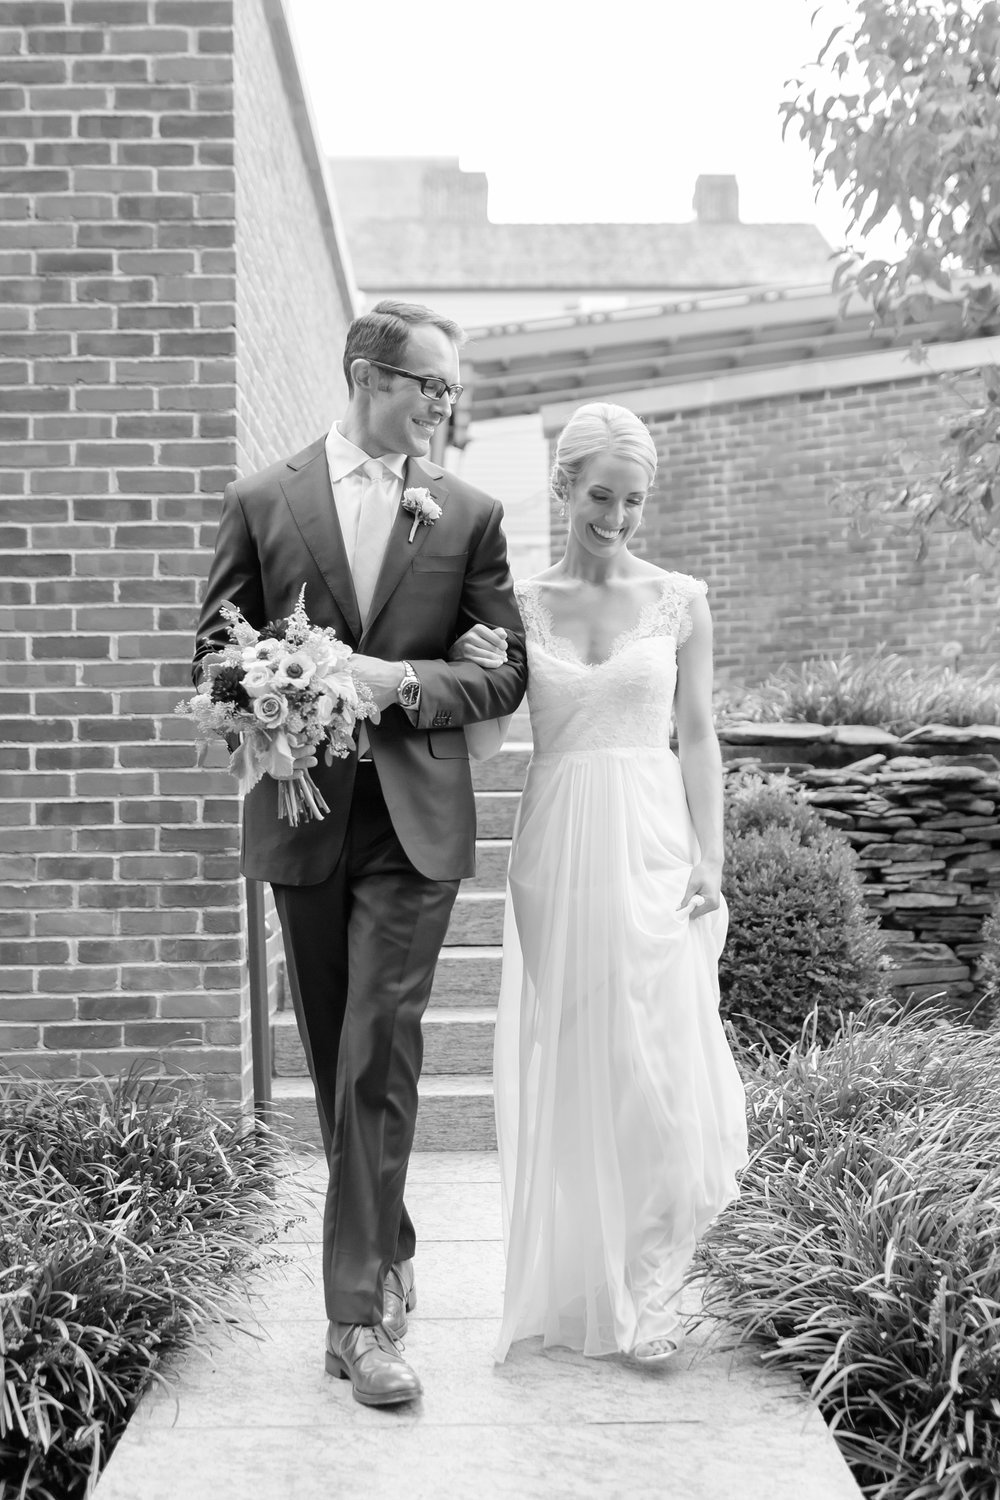 McAnelly 3. Bride & Groom Portraits-629_anna grace photography georgetown virginia wedding photographer ritz carlton wedding photo.jpg